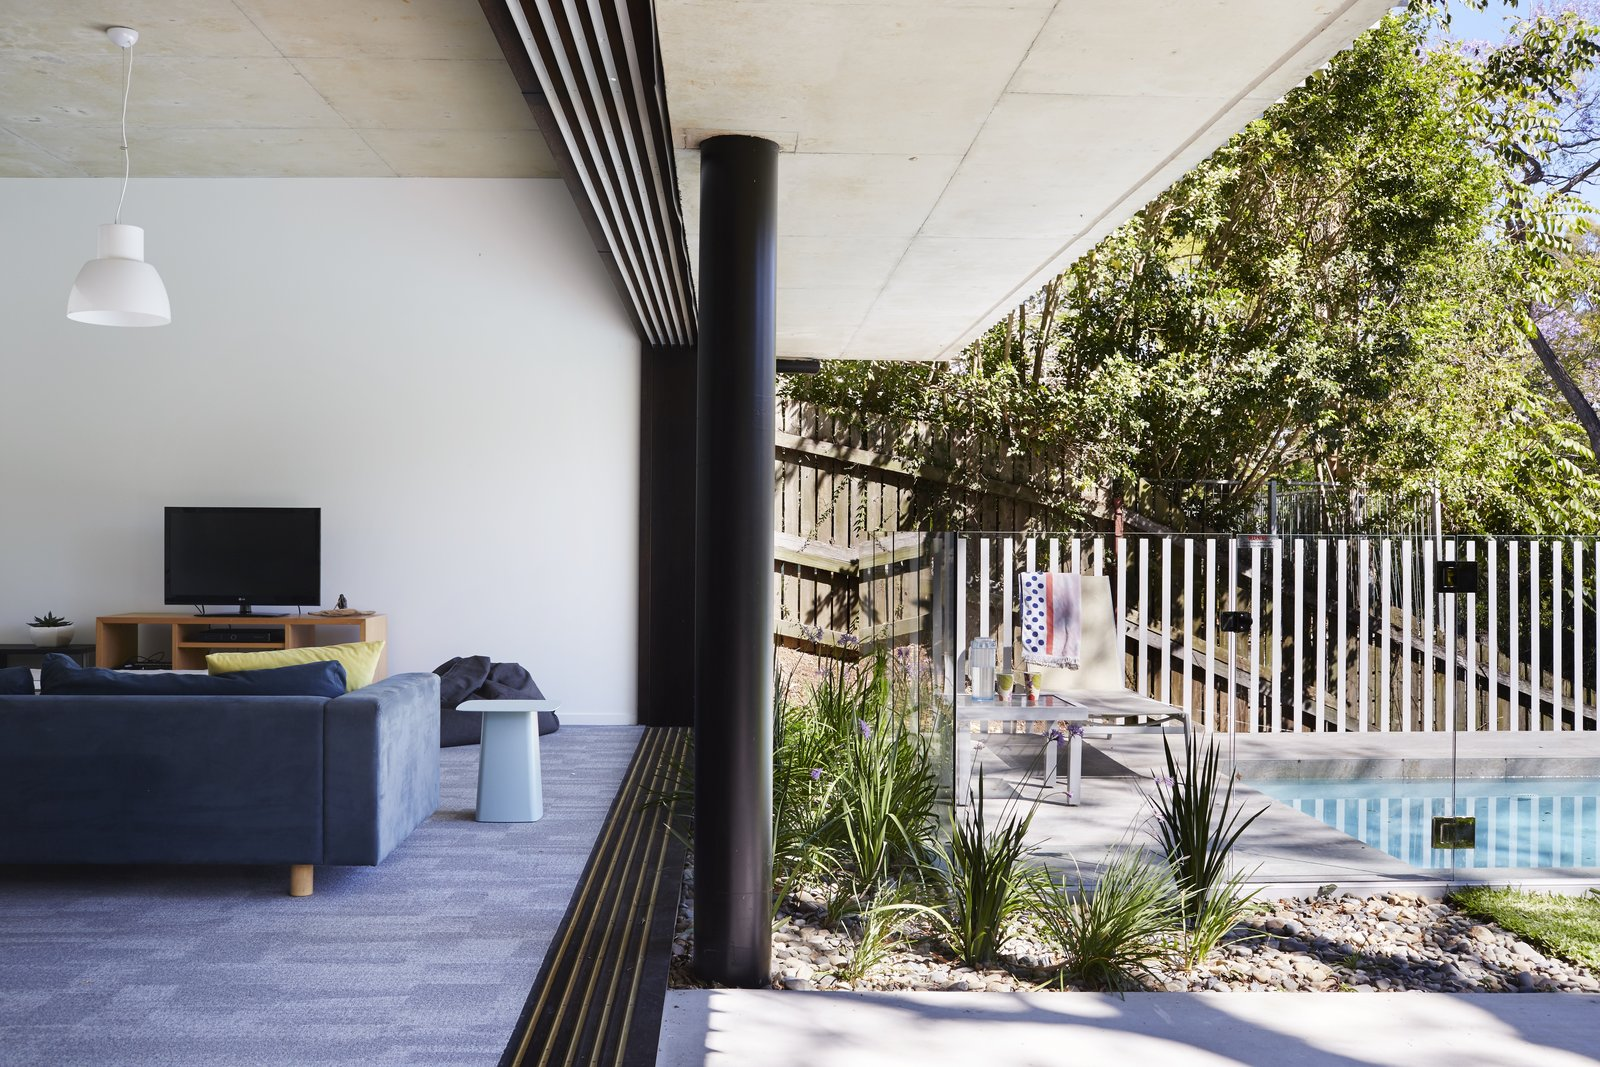 Outdoor, Back Yard, Trees, Shrubs, Hardscapes, Small Pools, Tubs, Shower, Large Patio, Porch, Deck, and Vertical Fences, Wall  Photo 10 of 12 in An Edgy Slatted Facade Conceals a Striking Indoor/Outdoor Home in Brisbane